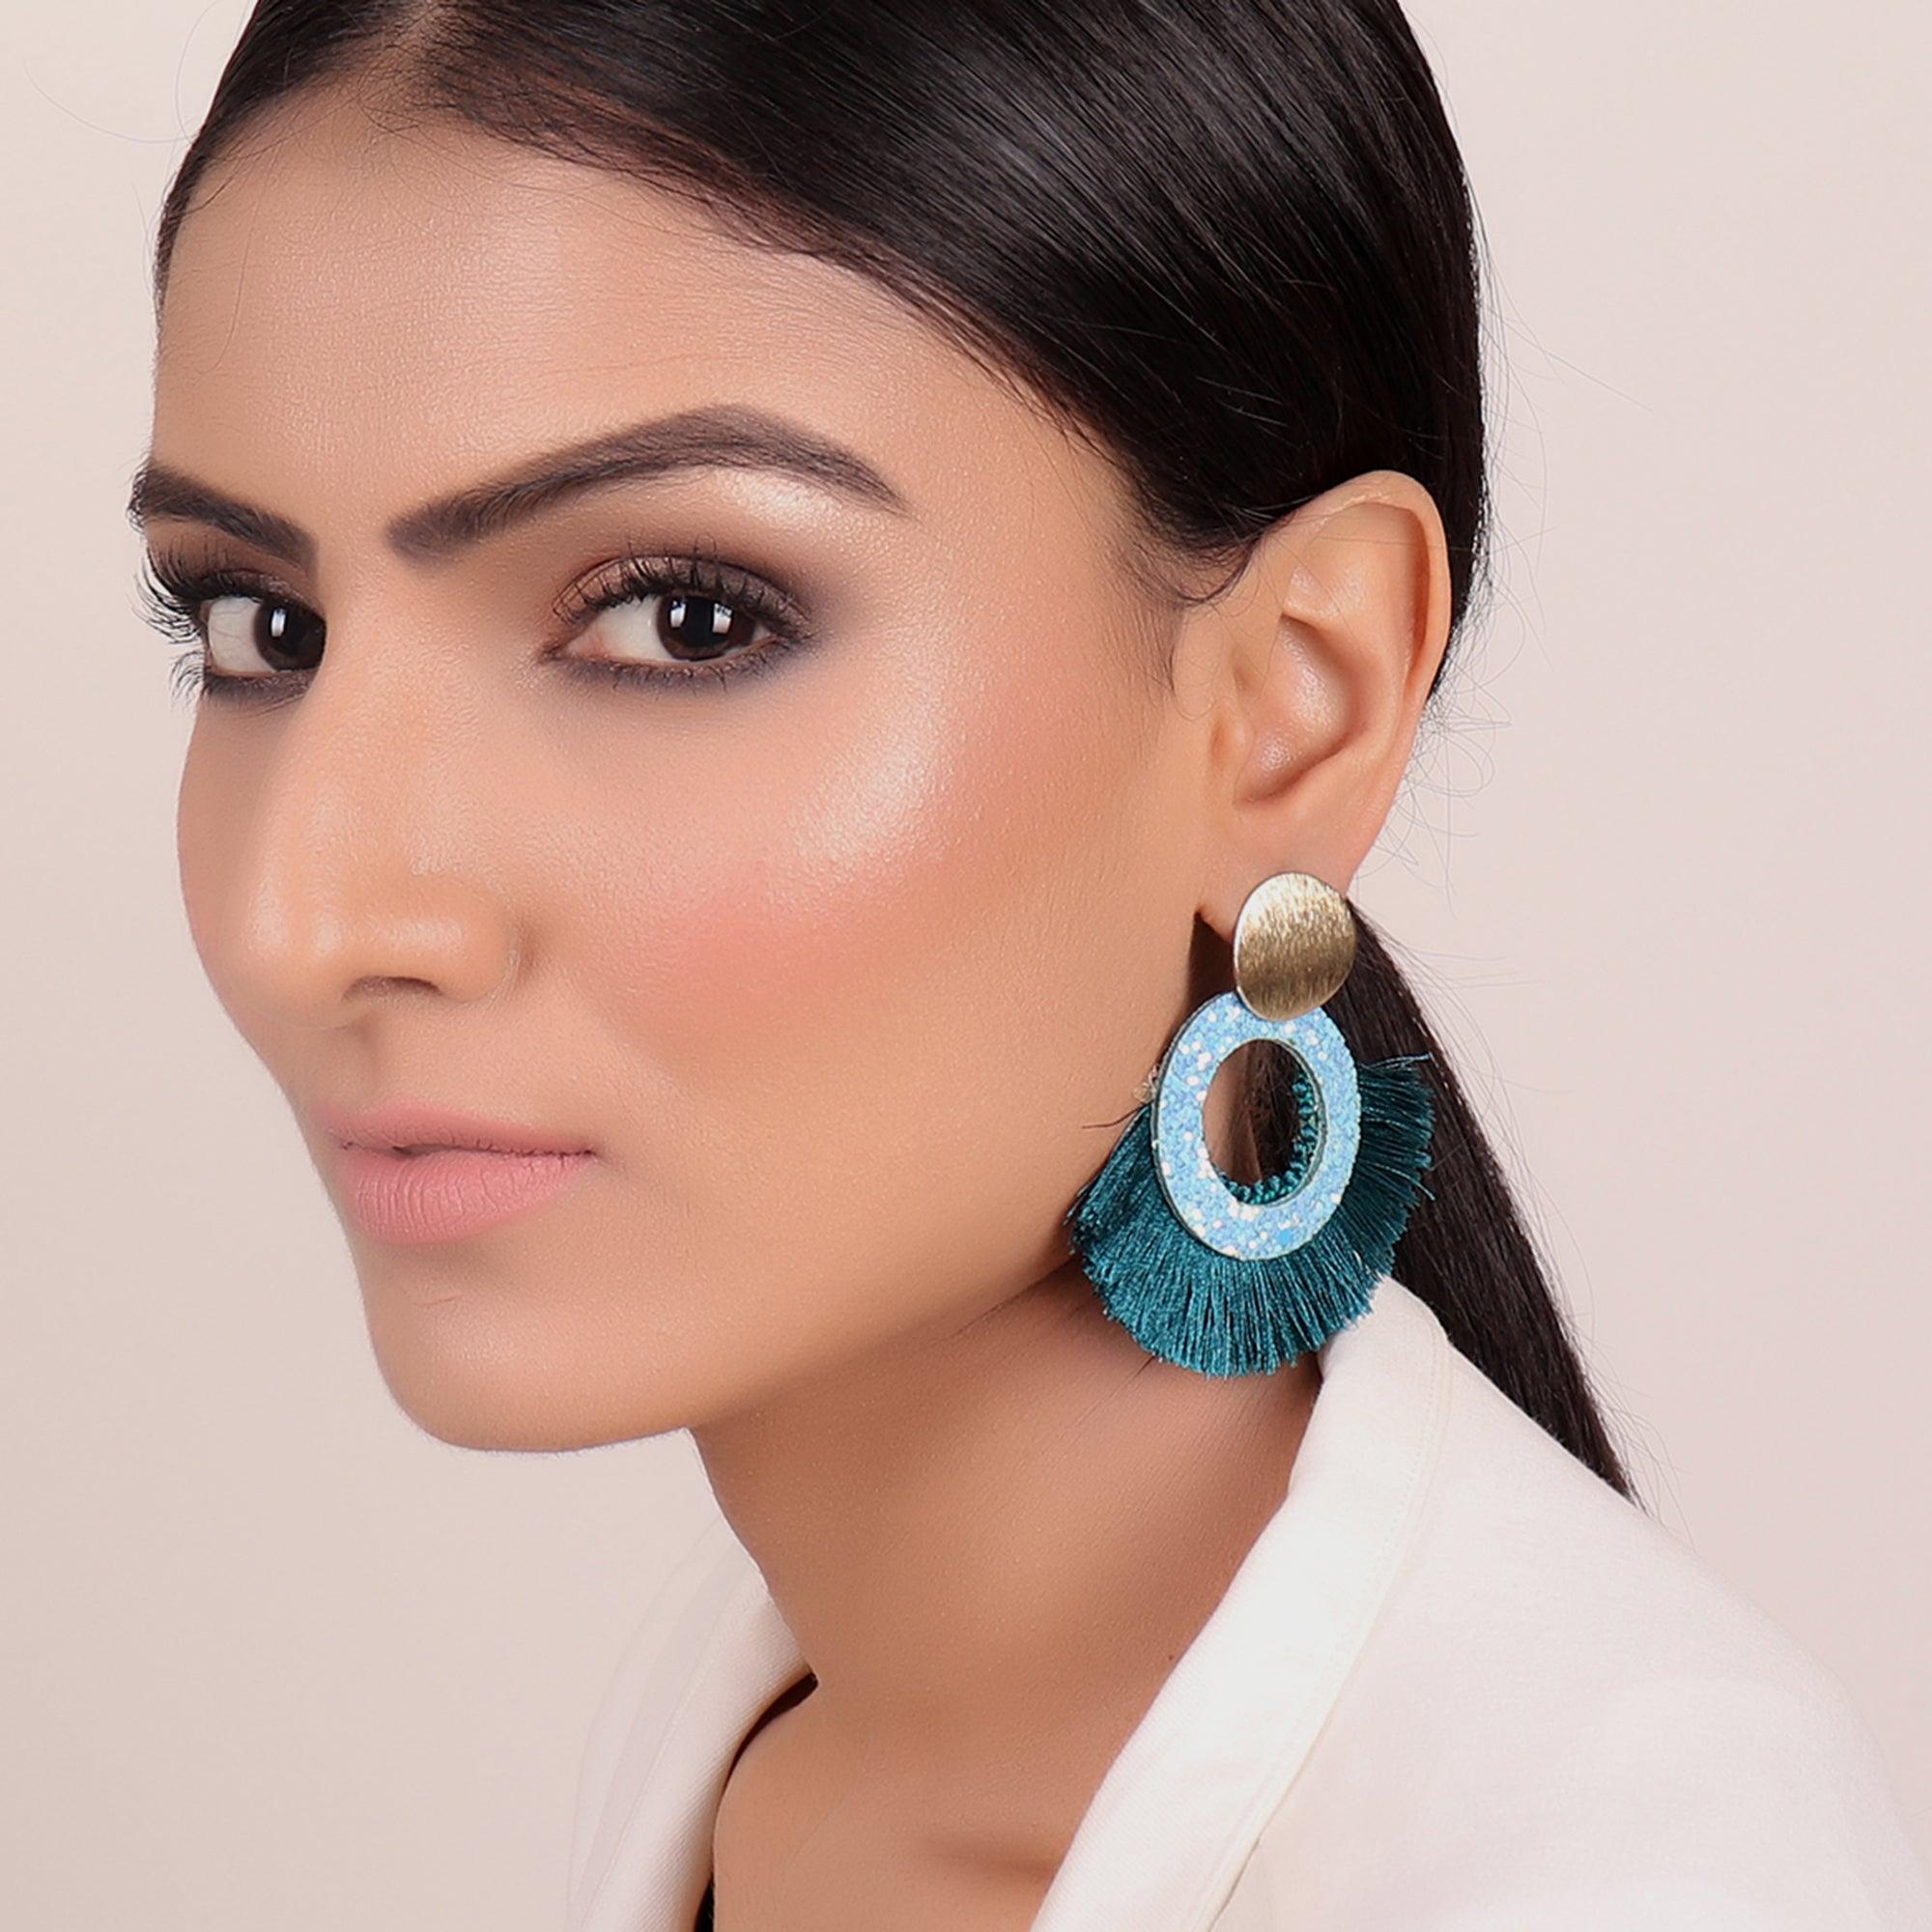 Earrings,Tassel Tryst Earrings in Blue - Cippele Multi Store